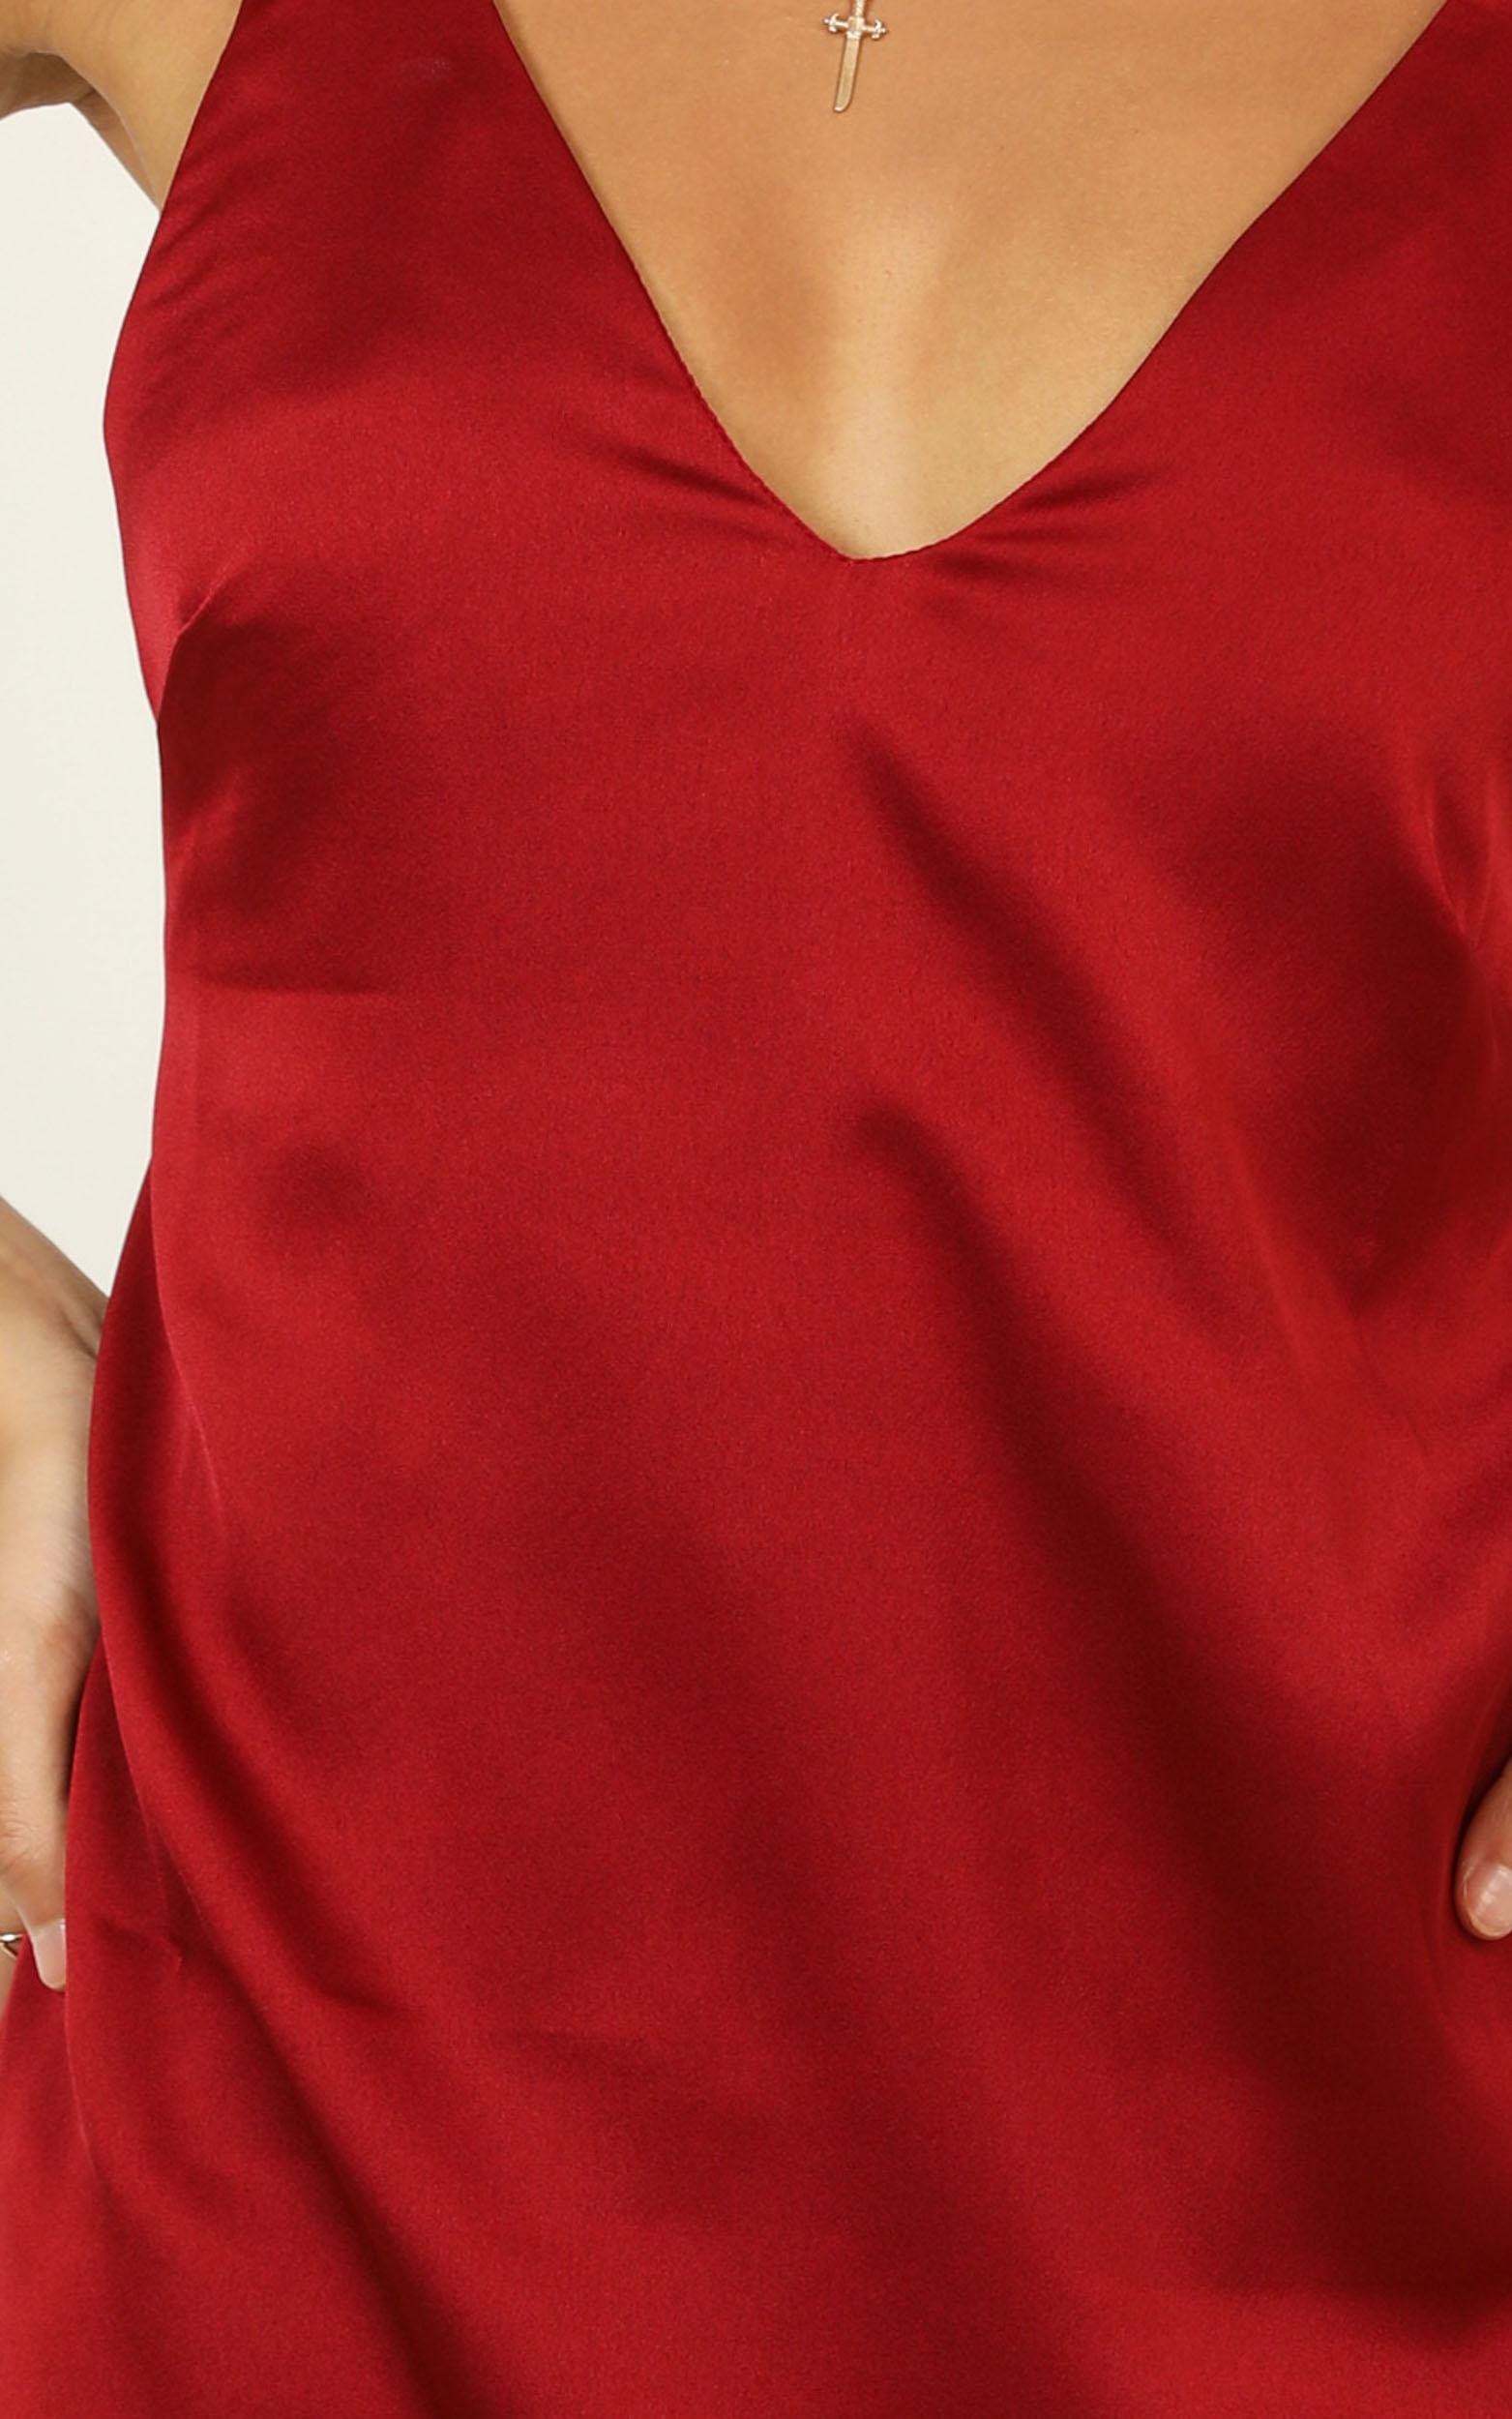 Mean So Much Dress In Wine Satin - 18 (XXXL), Wine, hi-res image number null